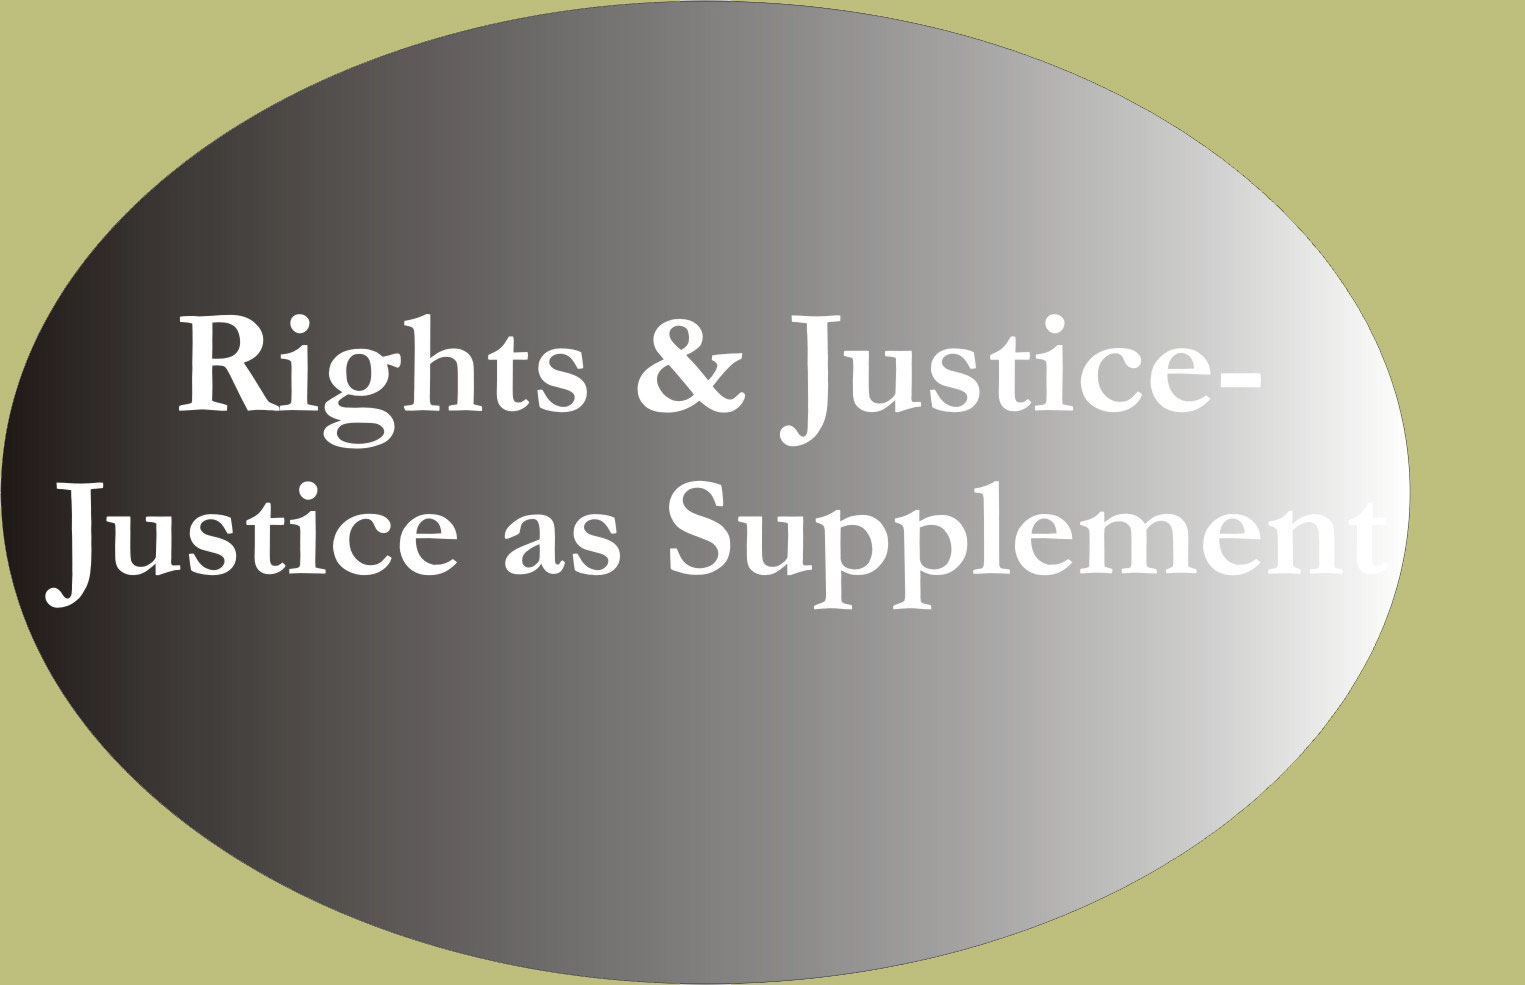 Rights and Justice-Justice as Supplement